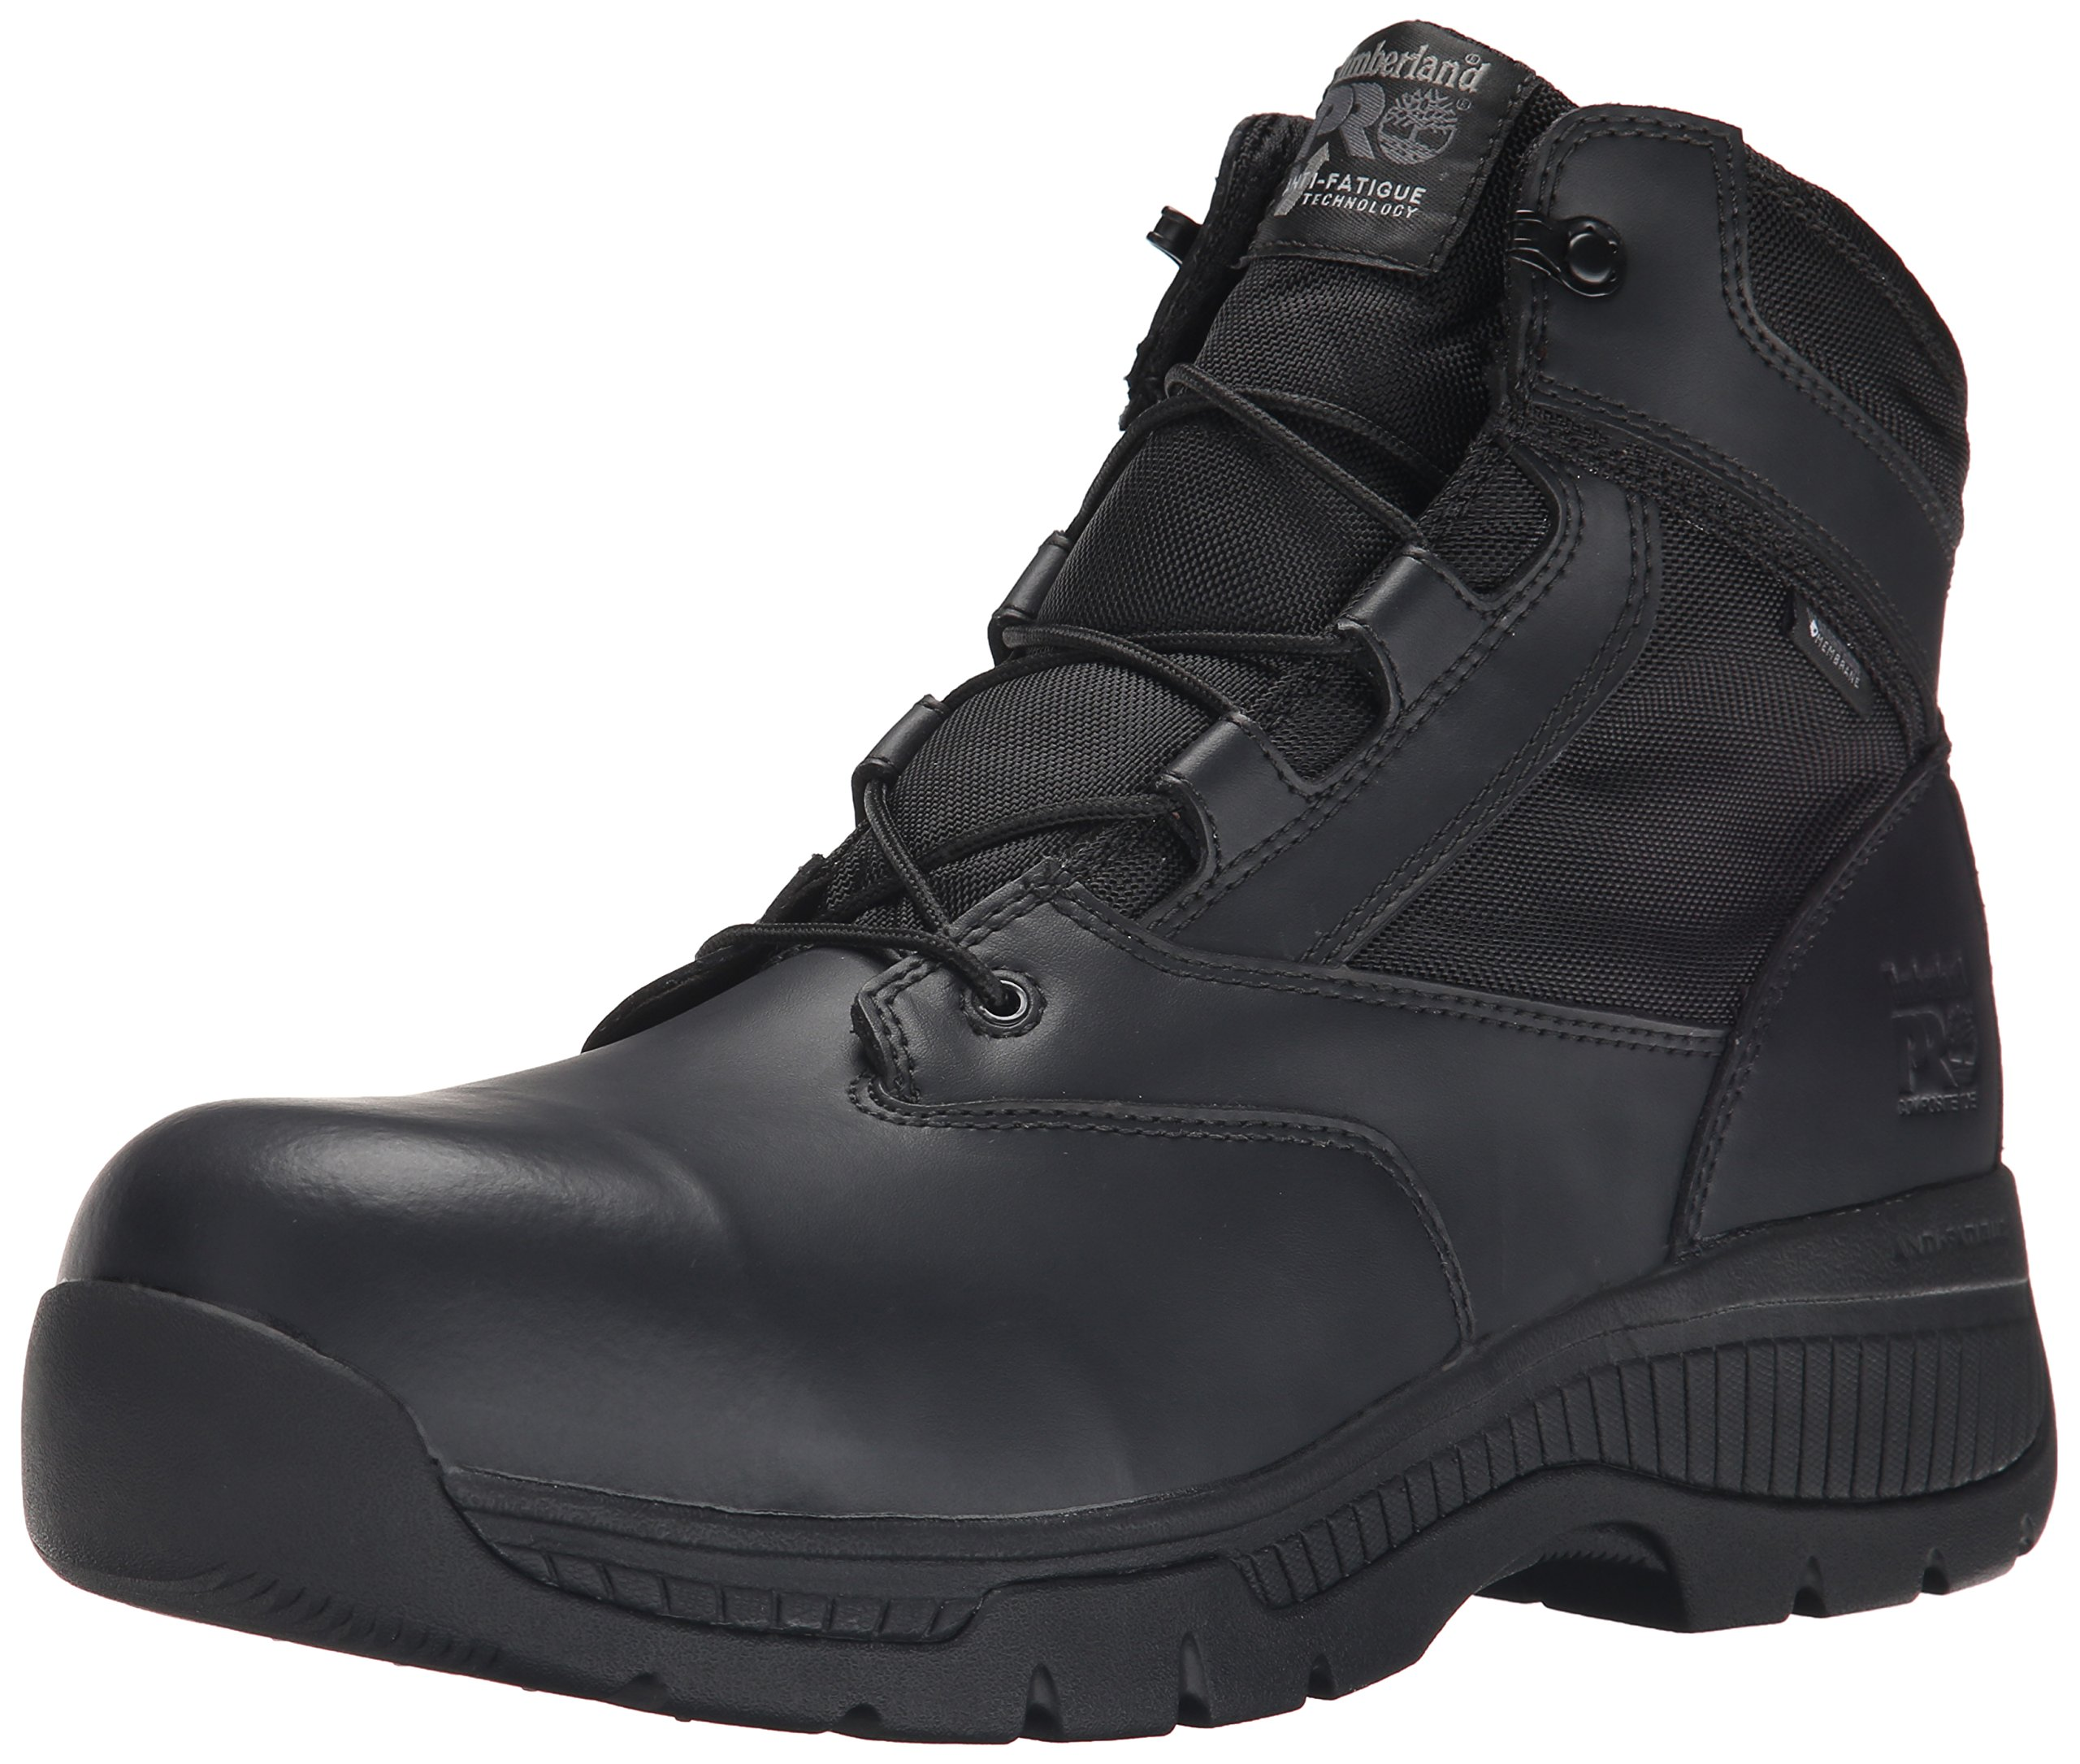 Timberland PRO Men's 6 Inch Valor Comp Toe Waterproof Side Zip Work Boot, Black Smooth Leather Ballistic Nylon, 9 M US